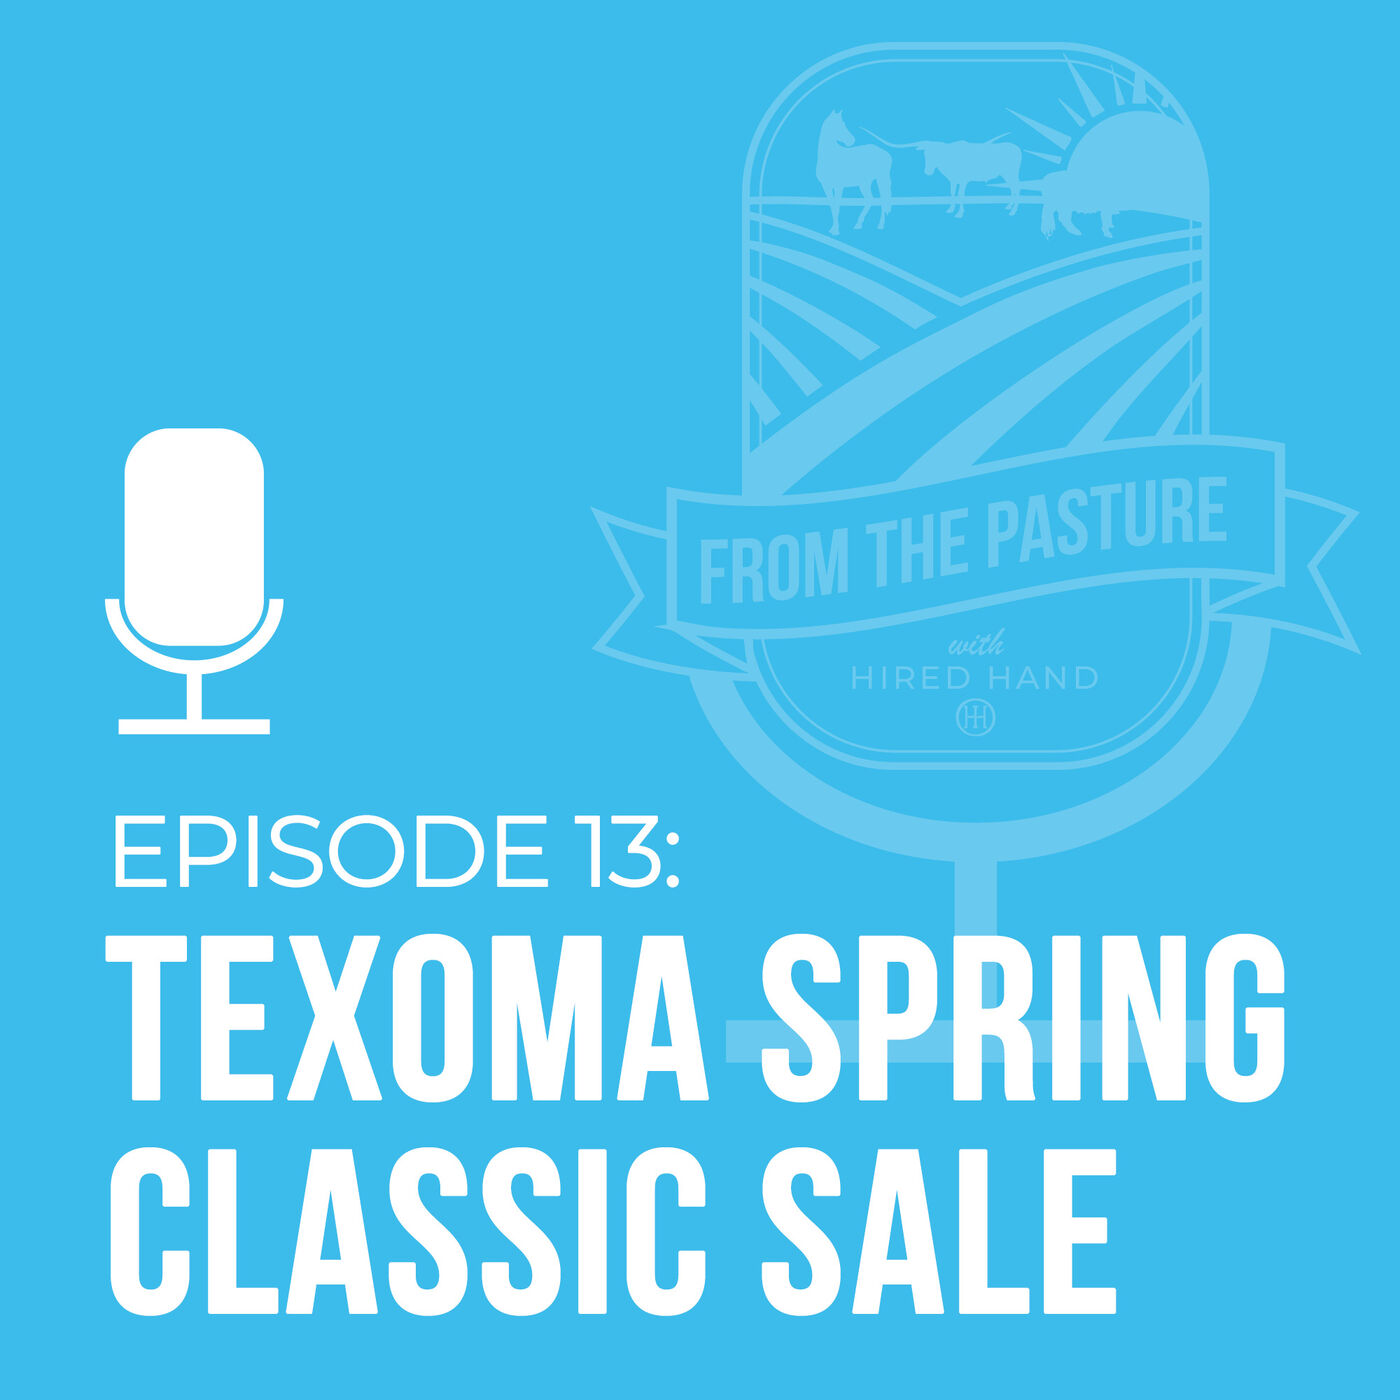 The Texoma Spring Classic